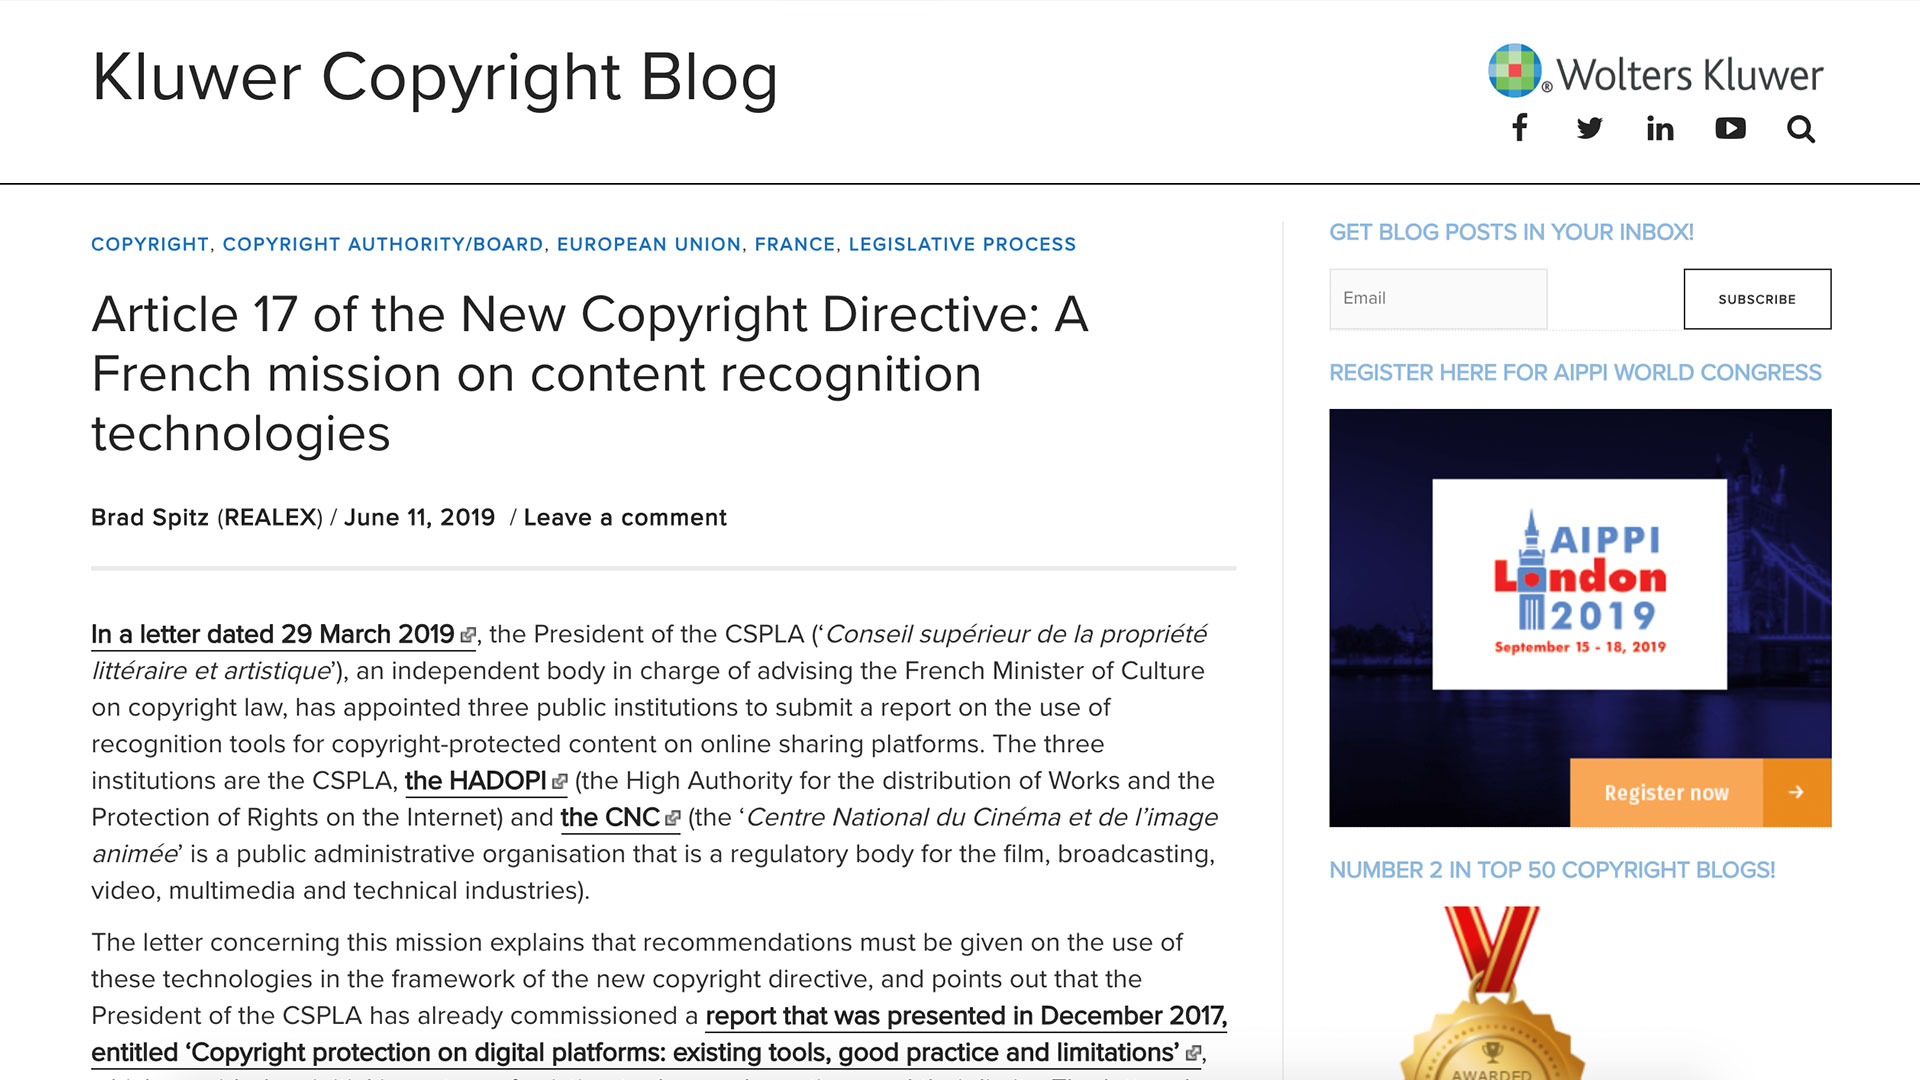 Fairness Rocks News Article 17 of the New Copyright Directive: A French mission on content recognition technologies